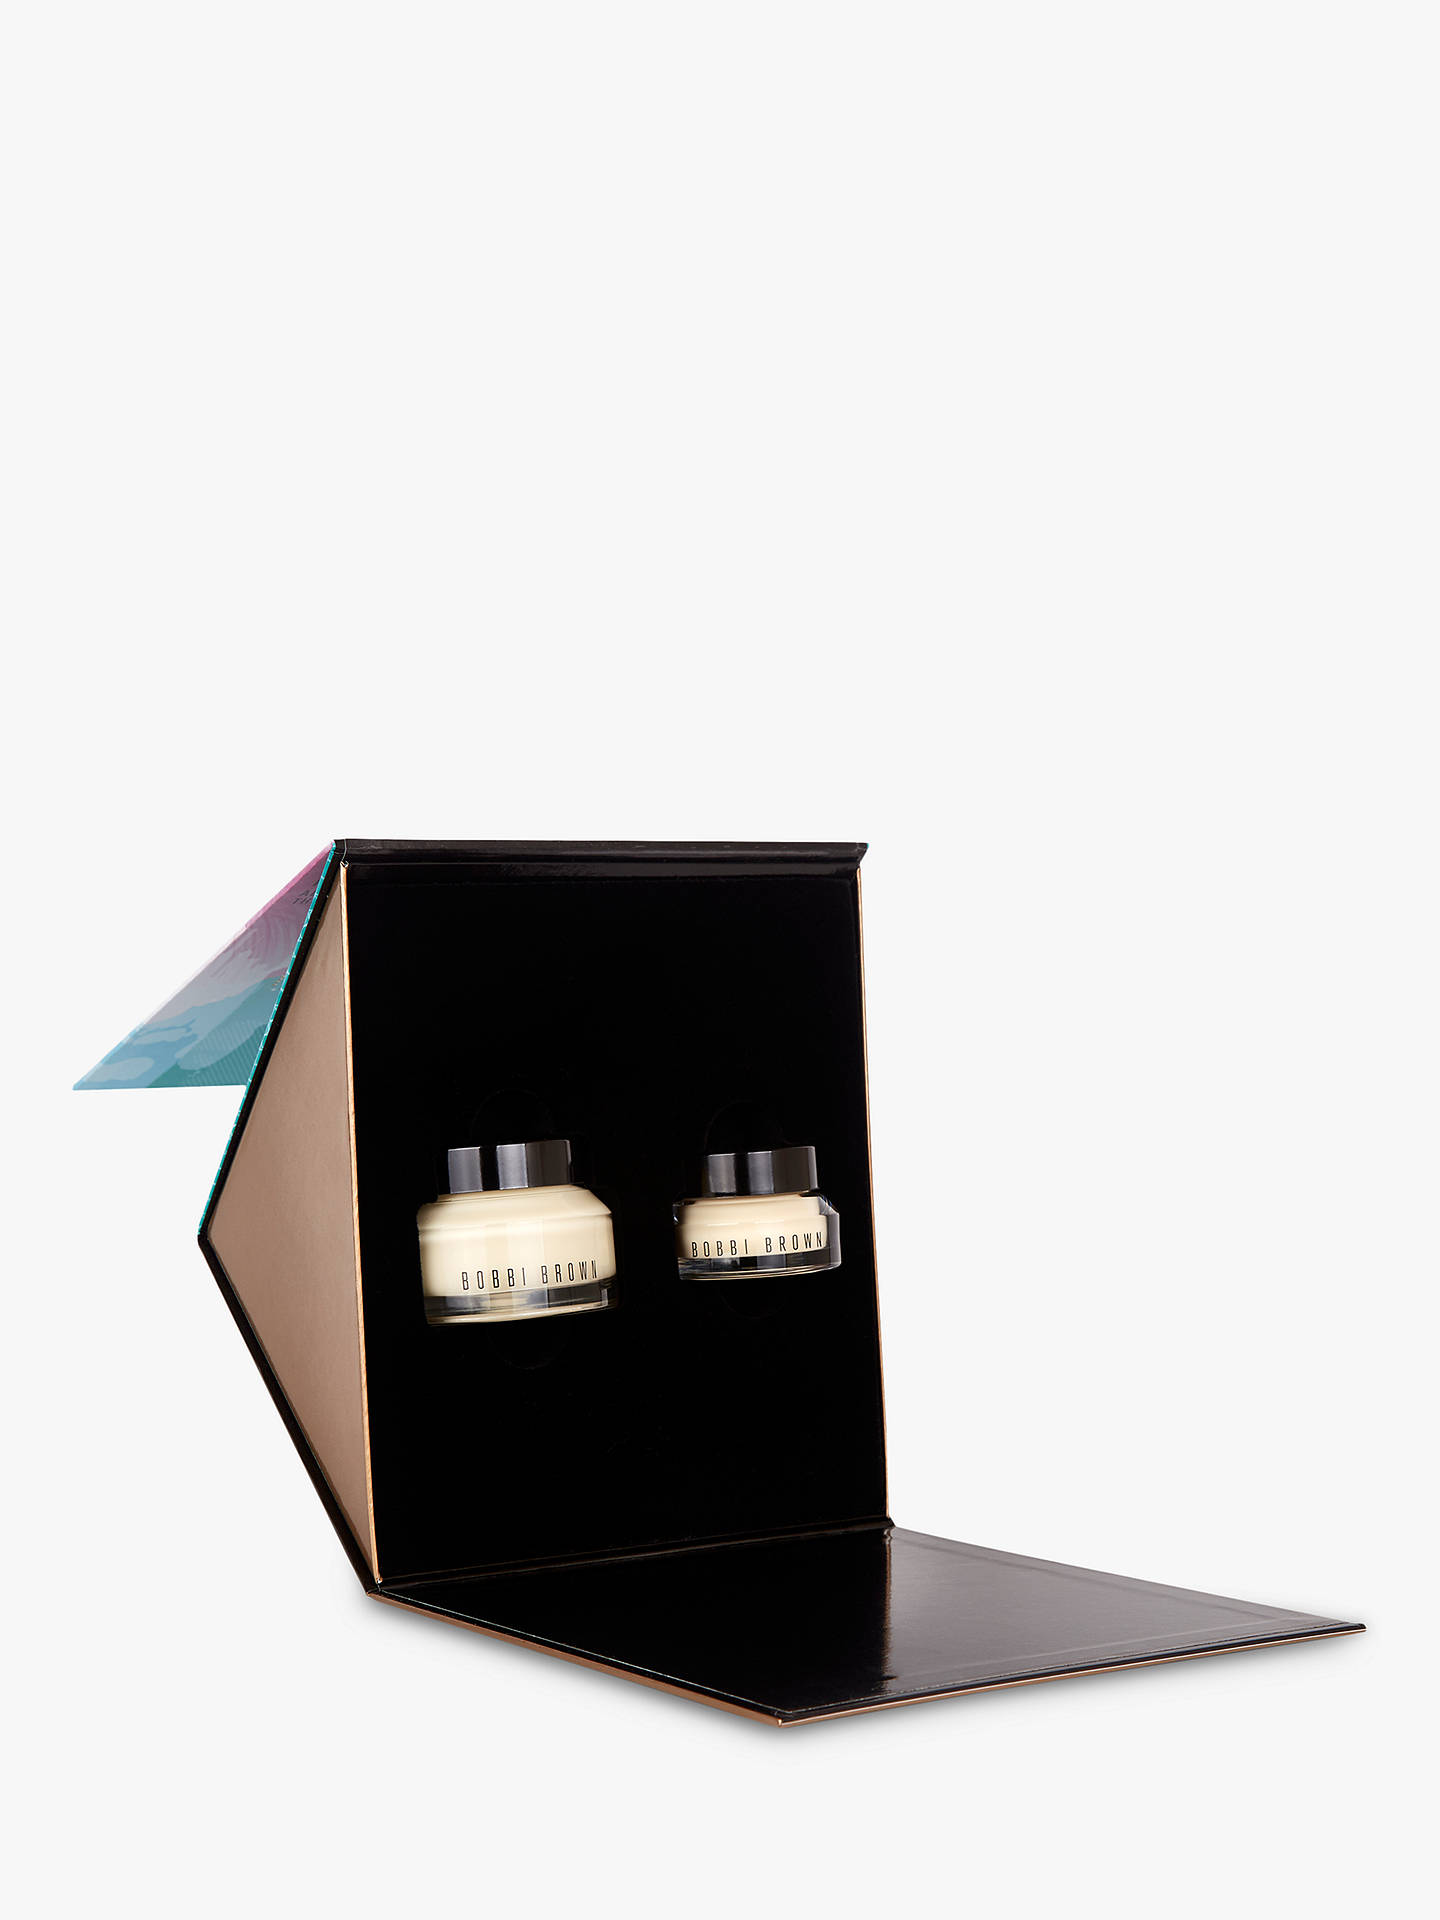 Buy Bobbi Brown Prep And Prime Makeup Gift Set Online at johnlewis.com